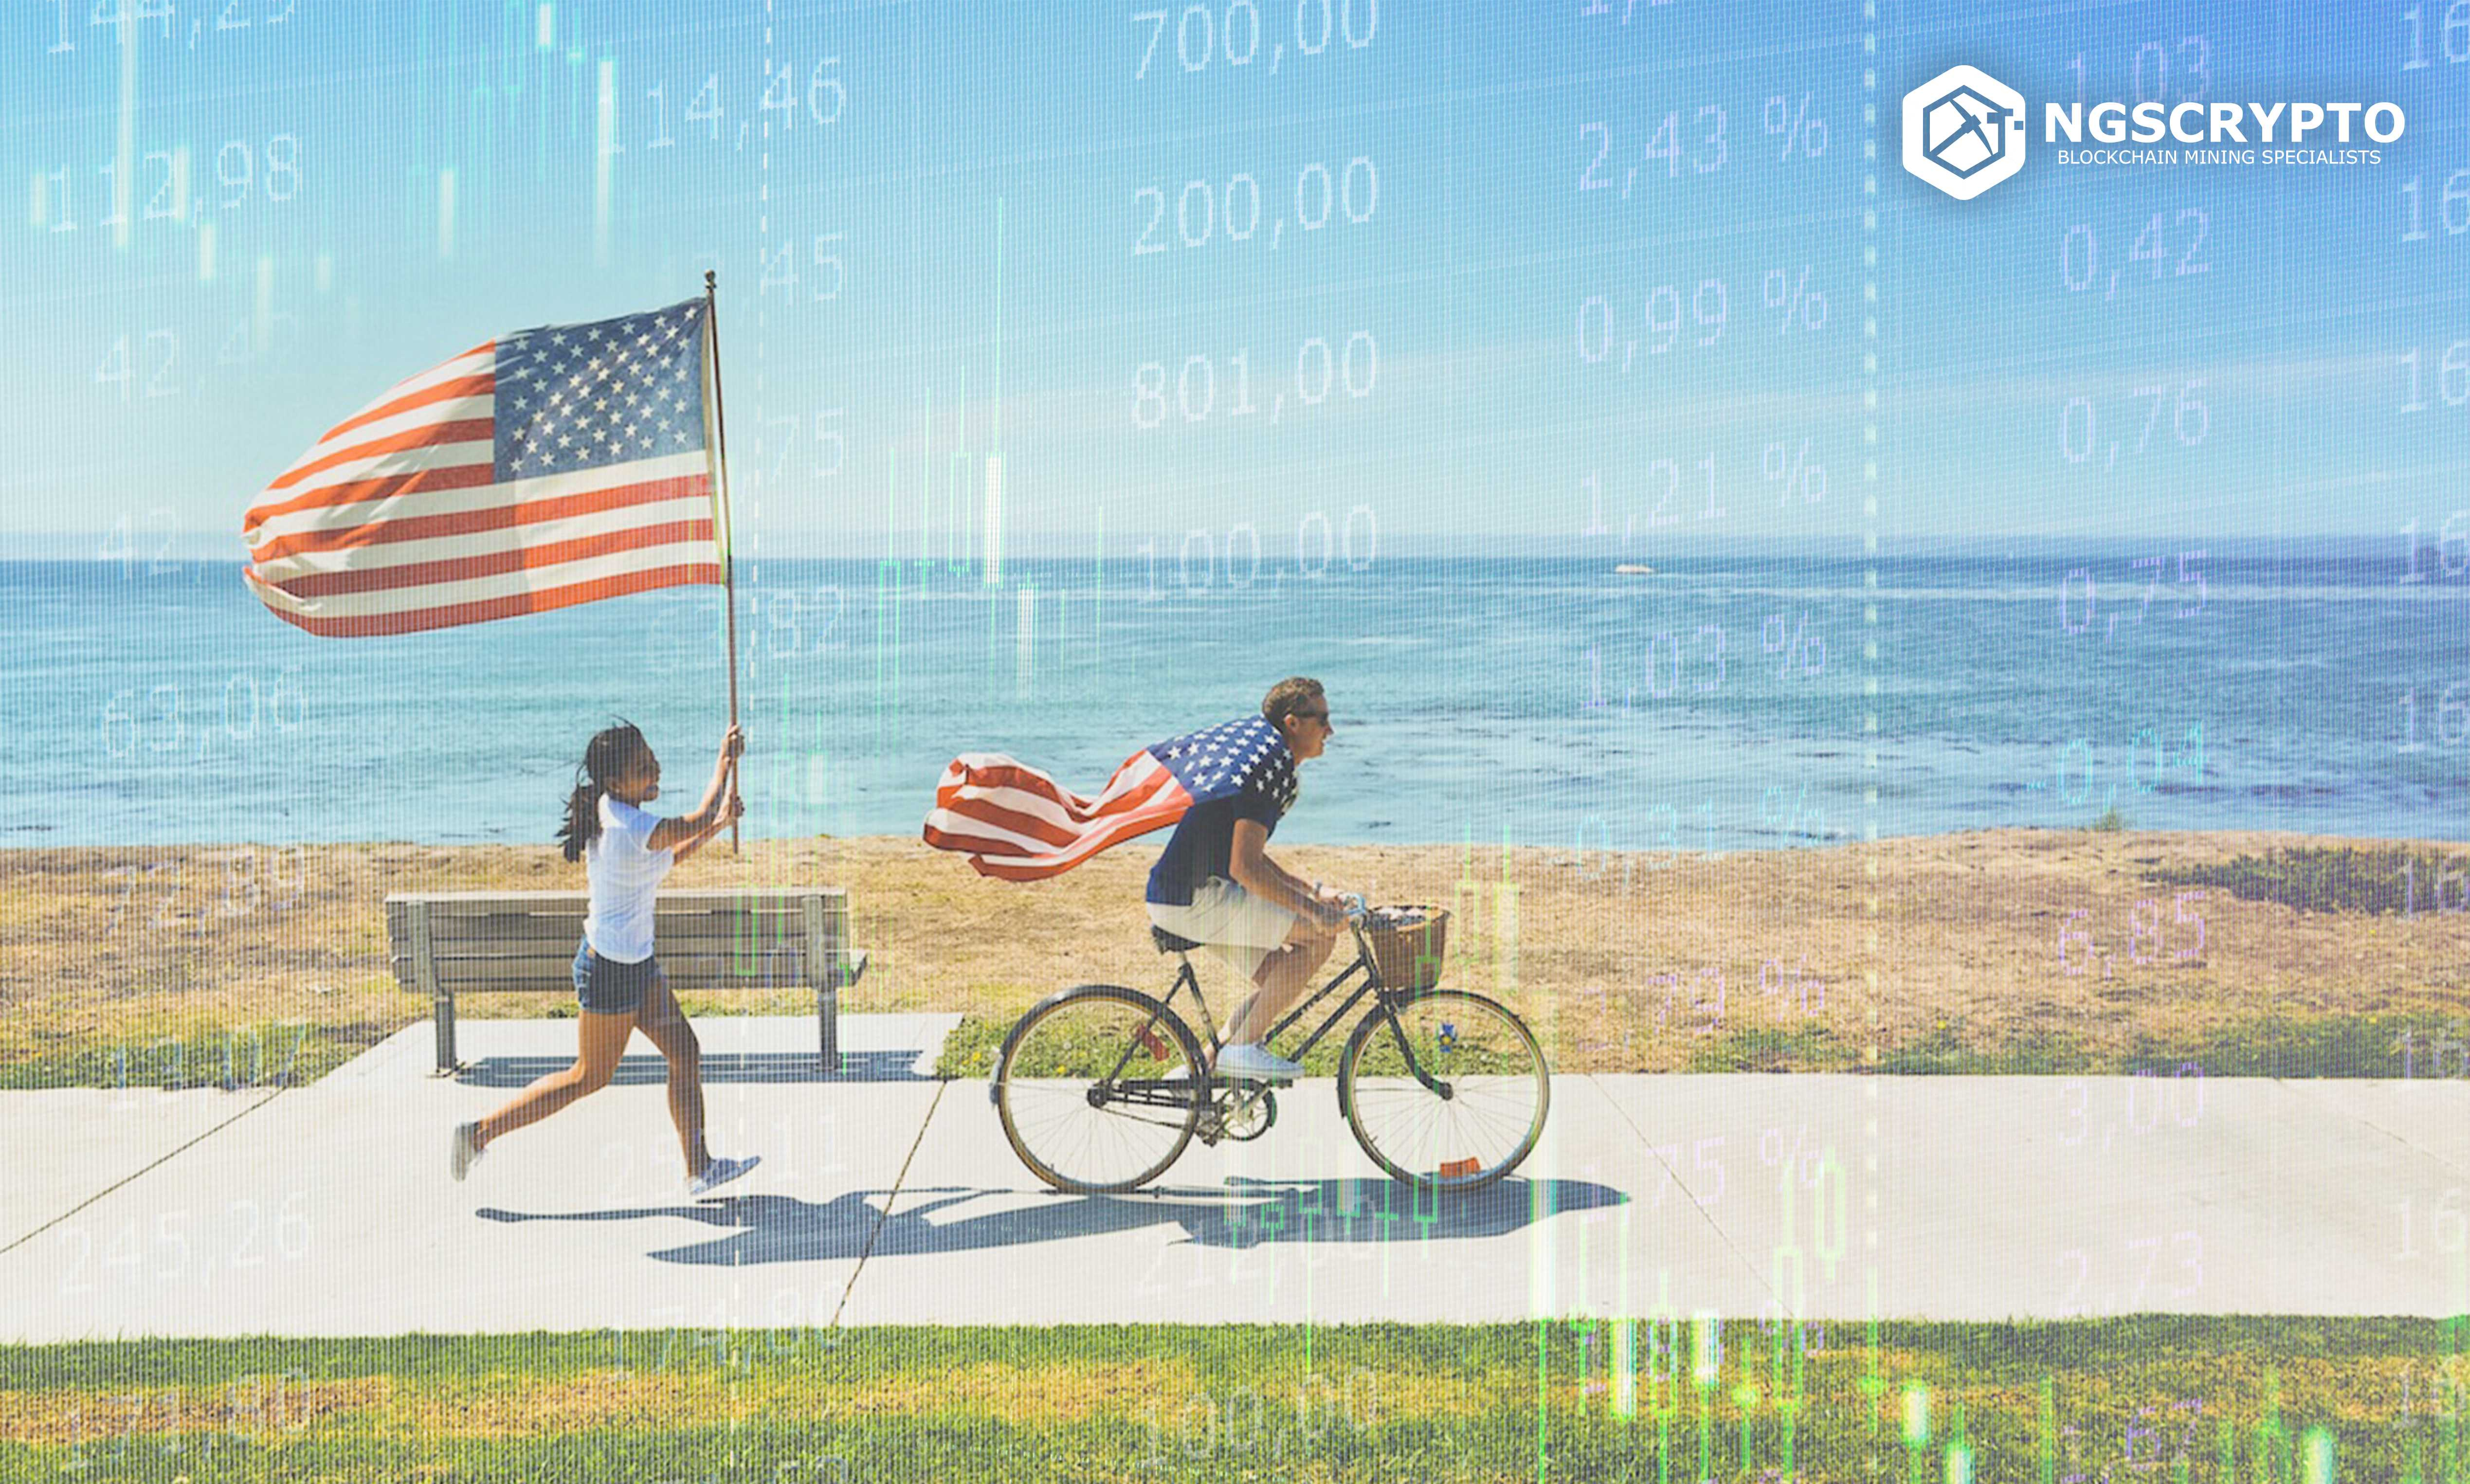 RESEARCH PROVES THAT 83% OF AMERICANS WOULD INVEST IN BTC